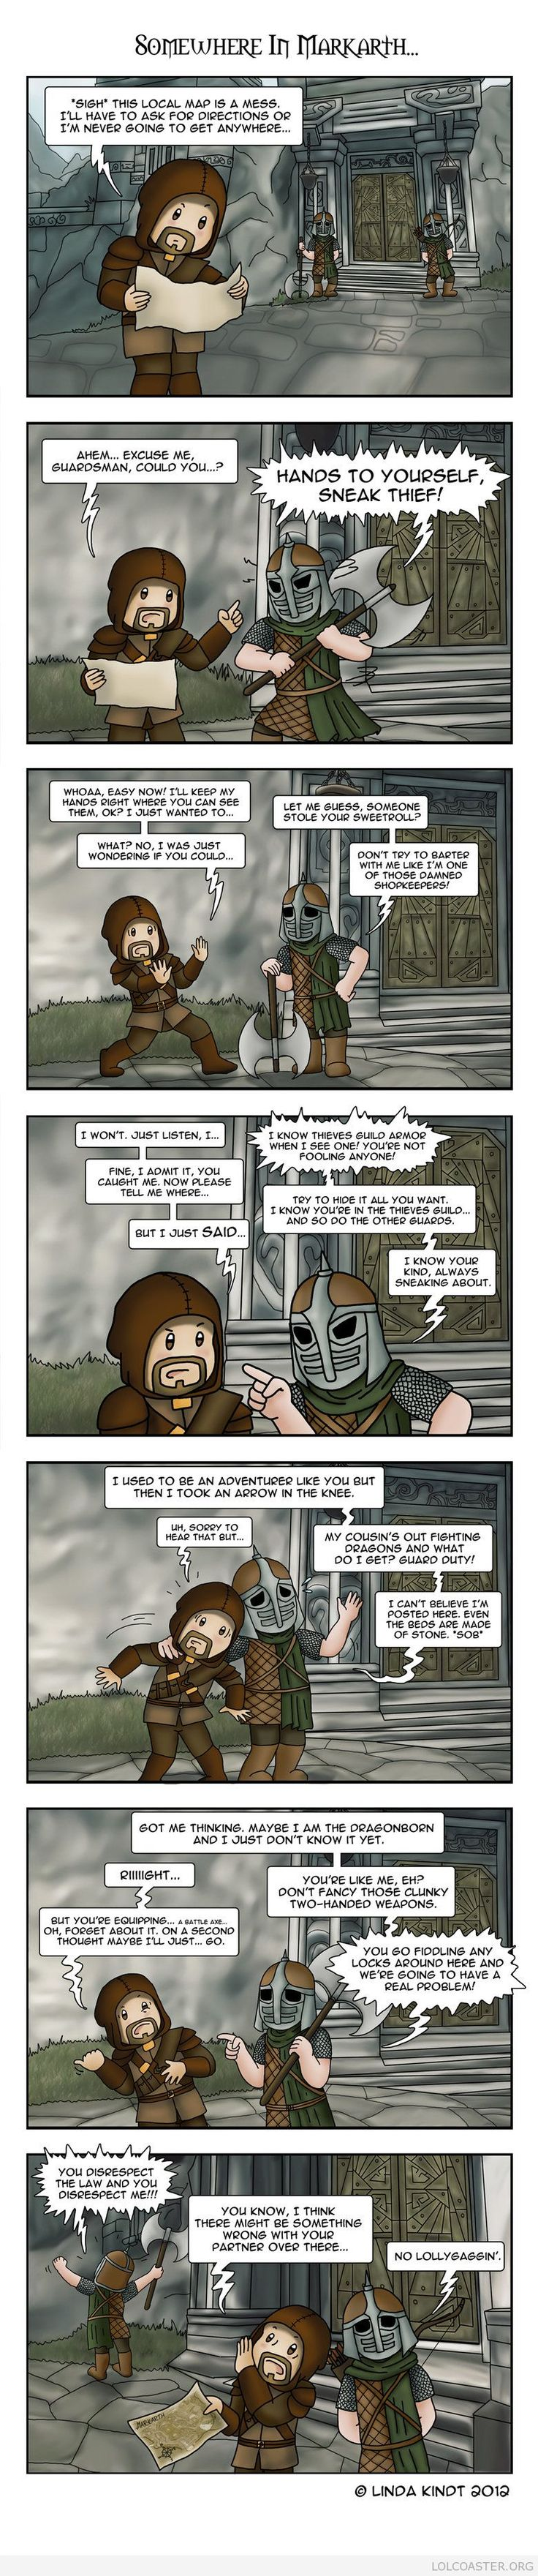 Meanwhile, in Markarth #gamer #gaming